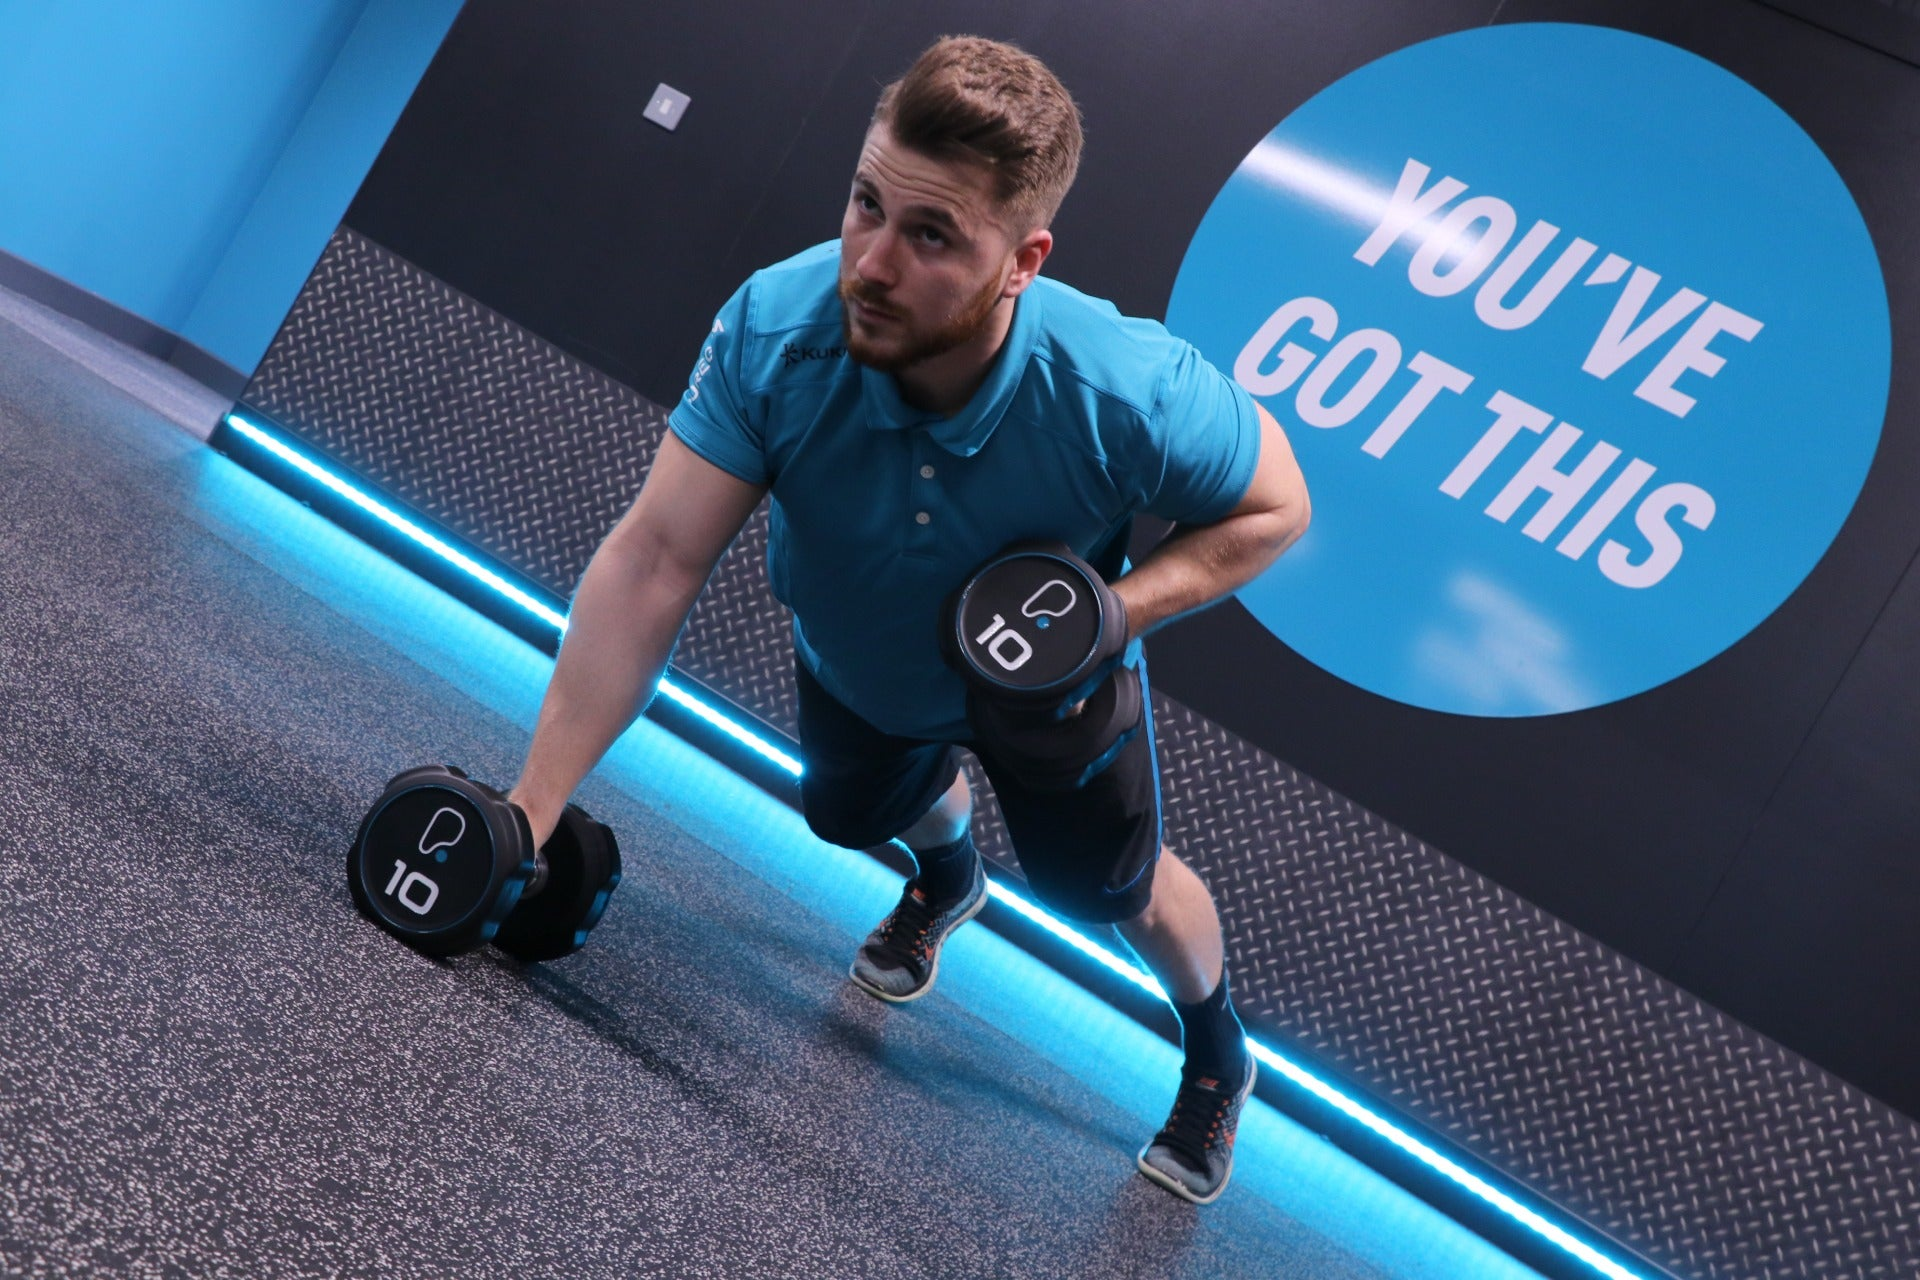 Customising your Gym Equipment with Jordan Fitness,